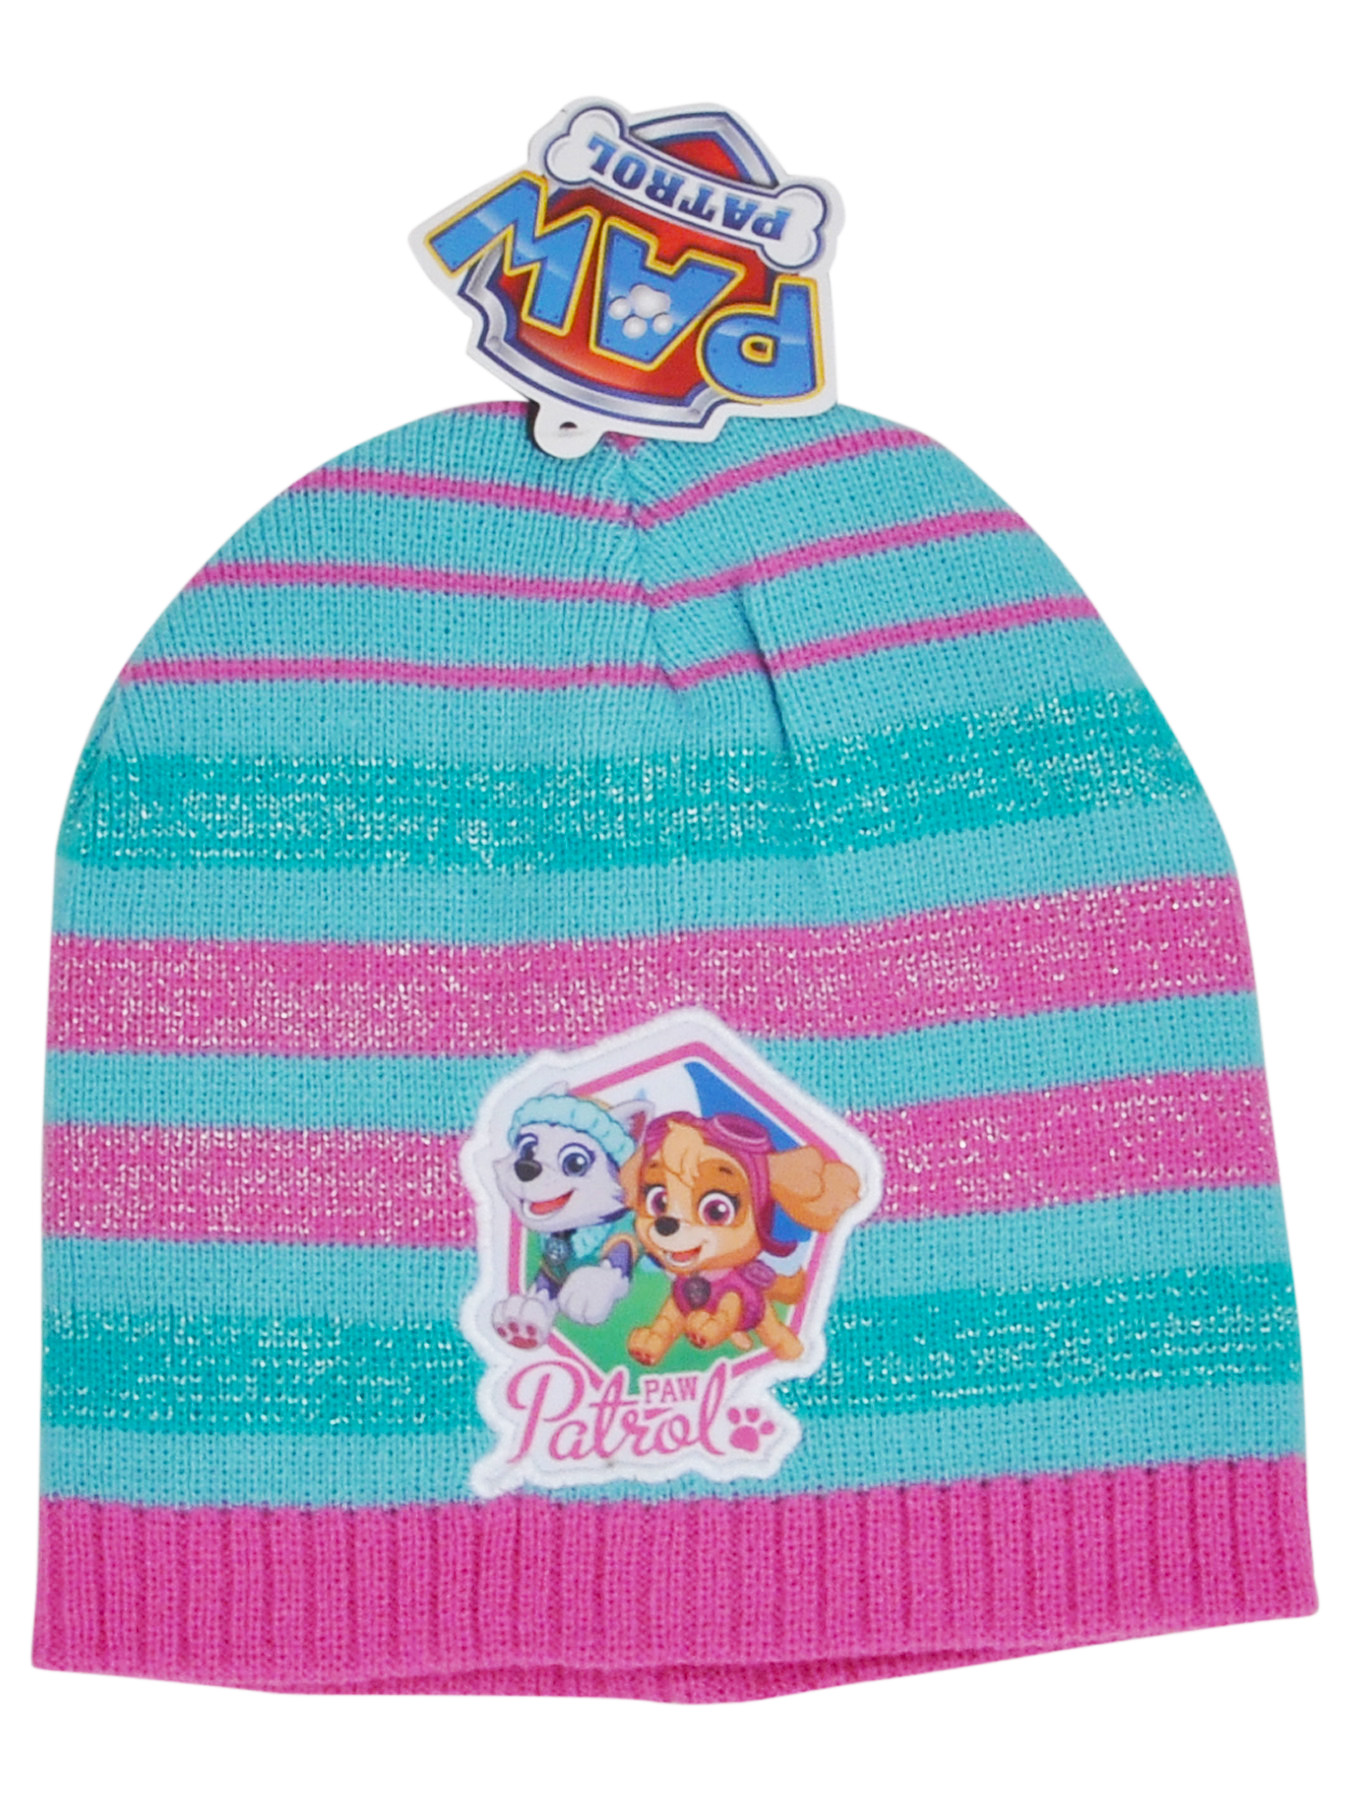 Girls Knit Cuffed Beanie Hat Choose Minnie Paw Patrol Frozen Disney ... 7be9f930875